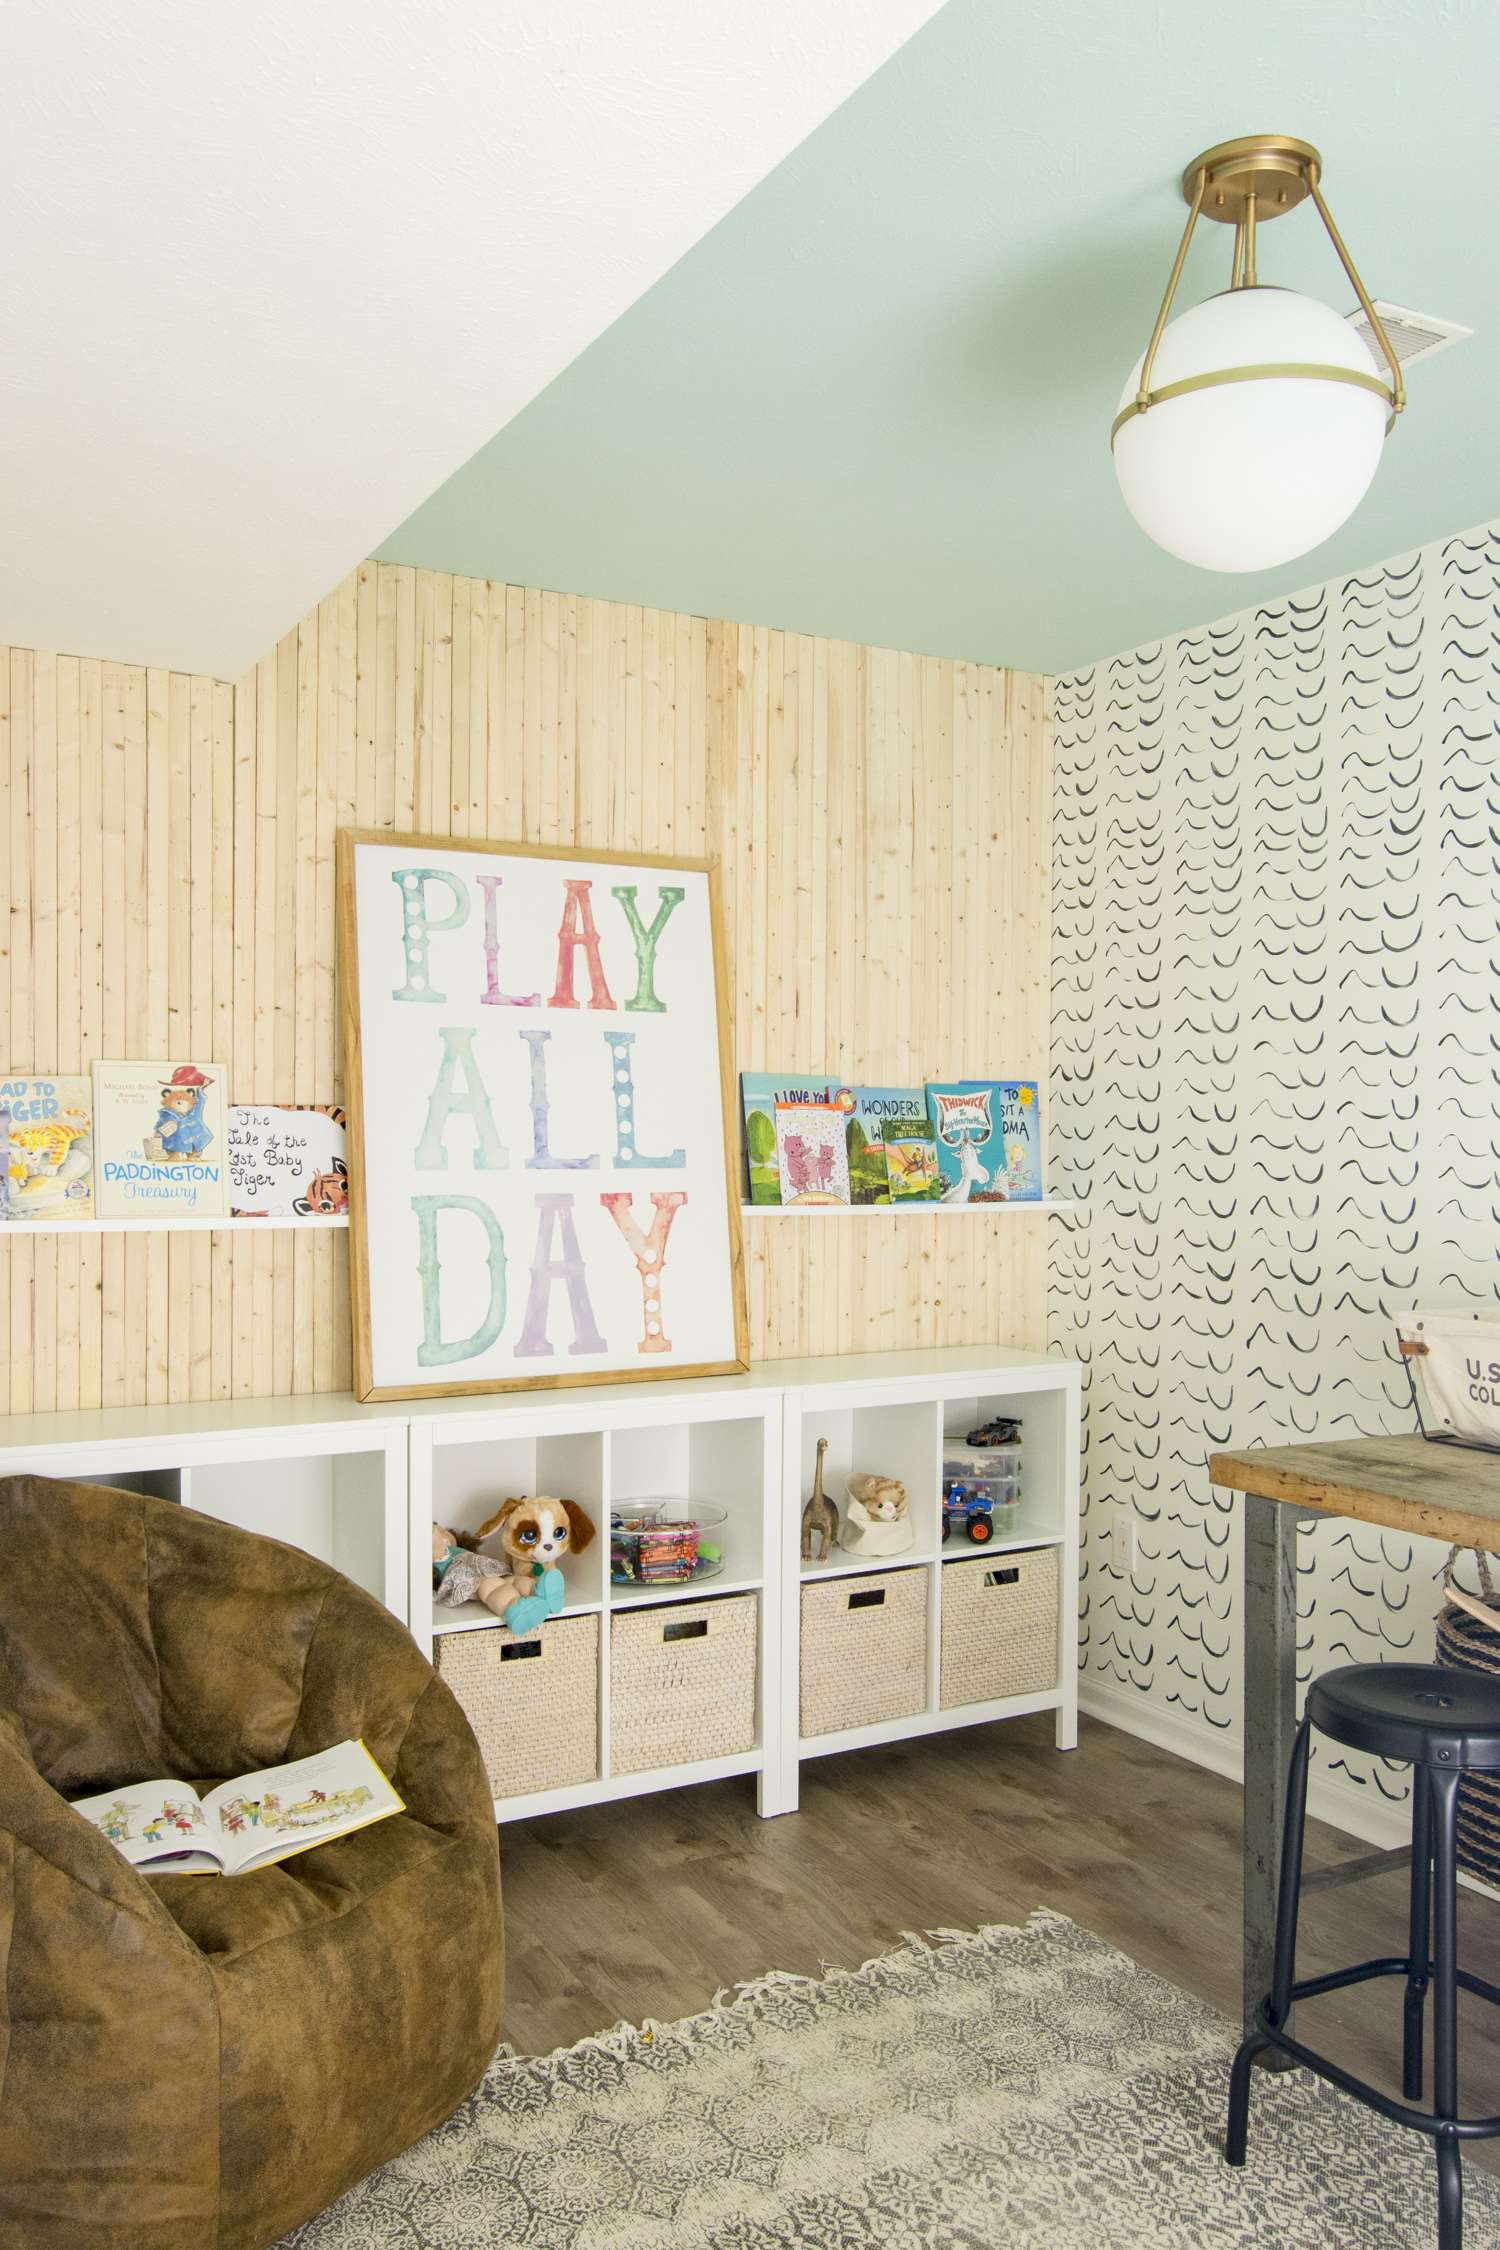 Have your children's toys and craft supplies taken over your home? Here are 3 ways to create a unique and fun kid's playroom with organization and purpose.